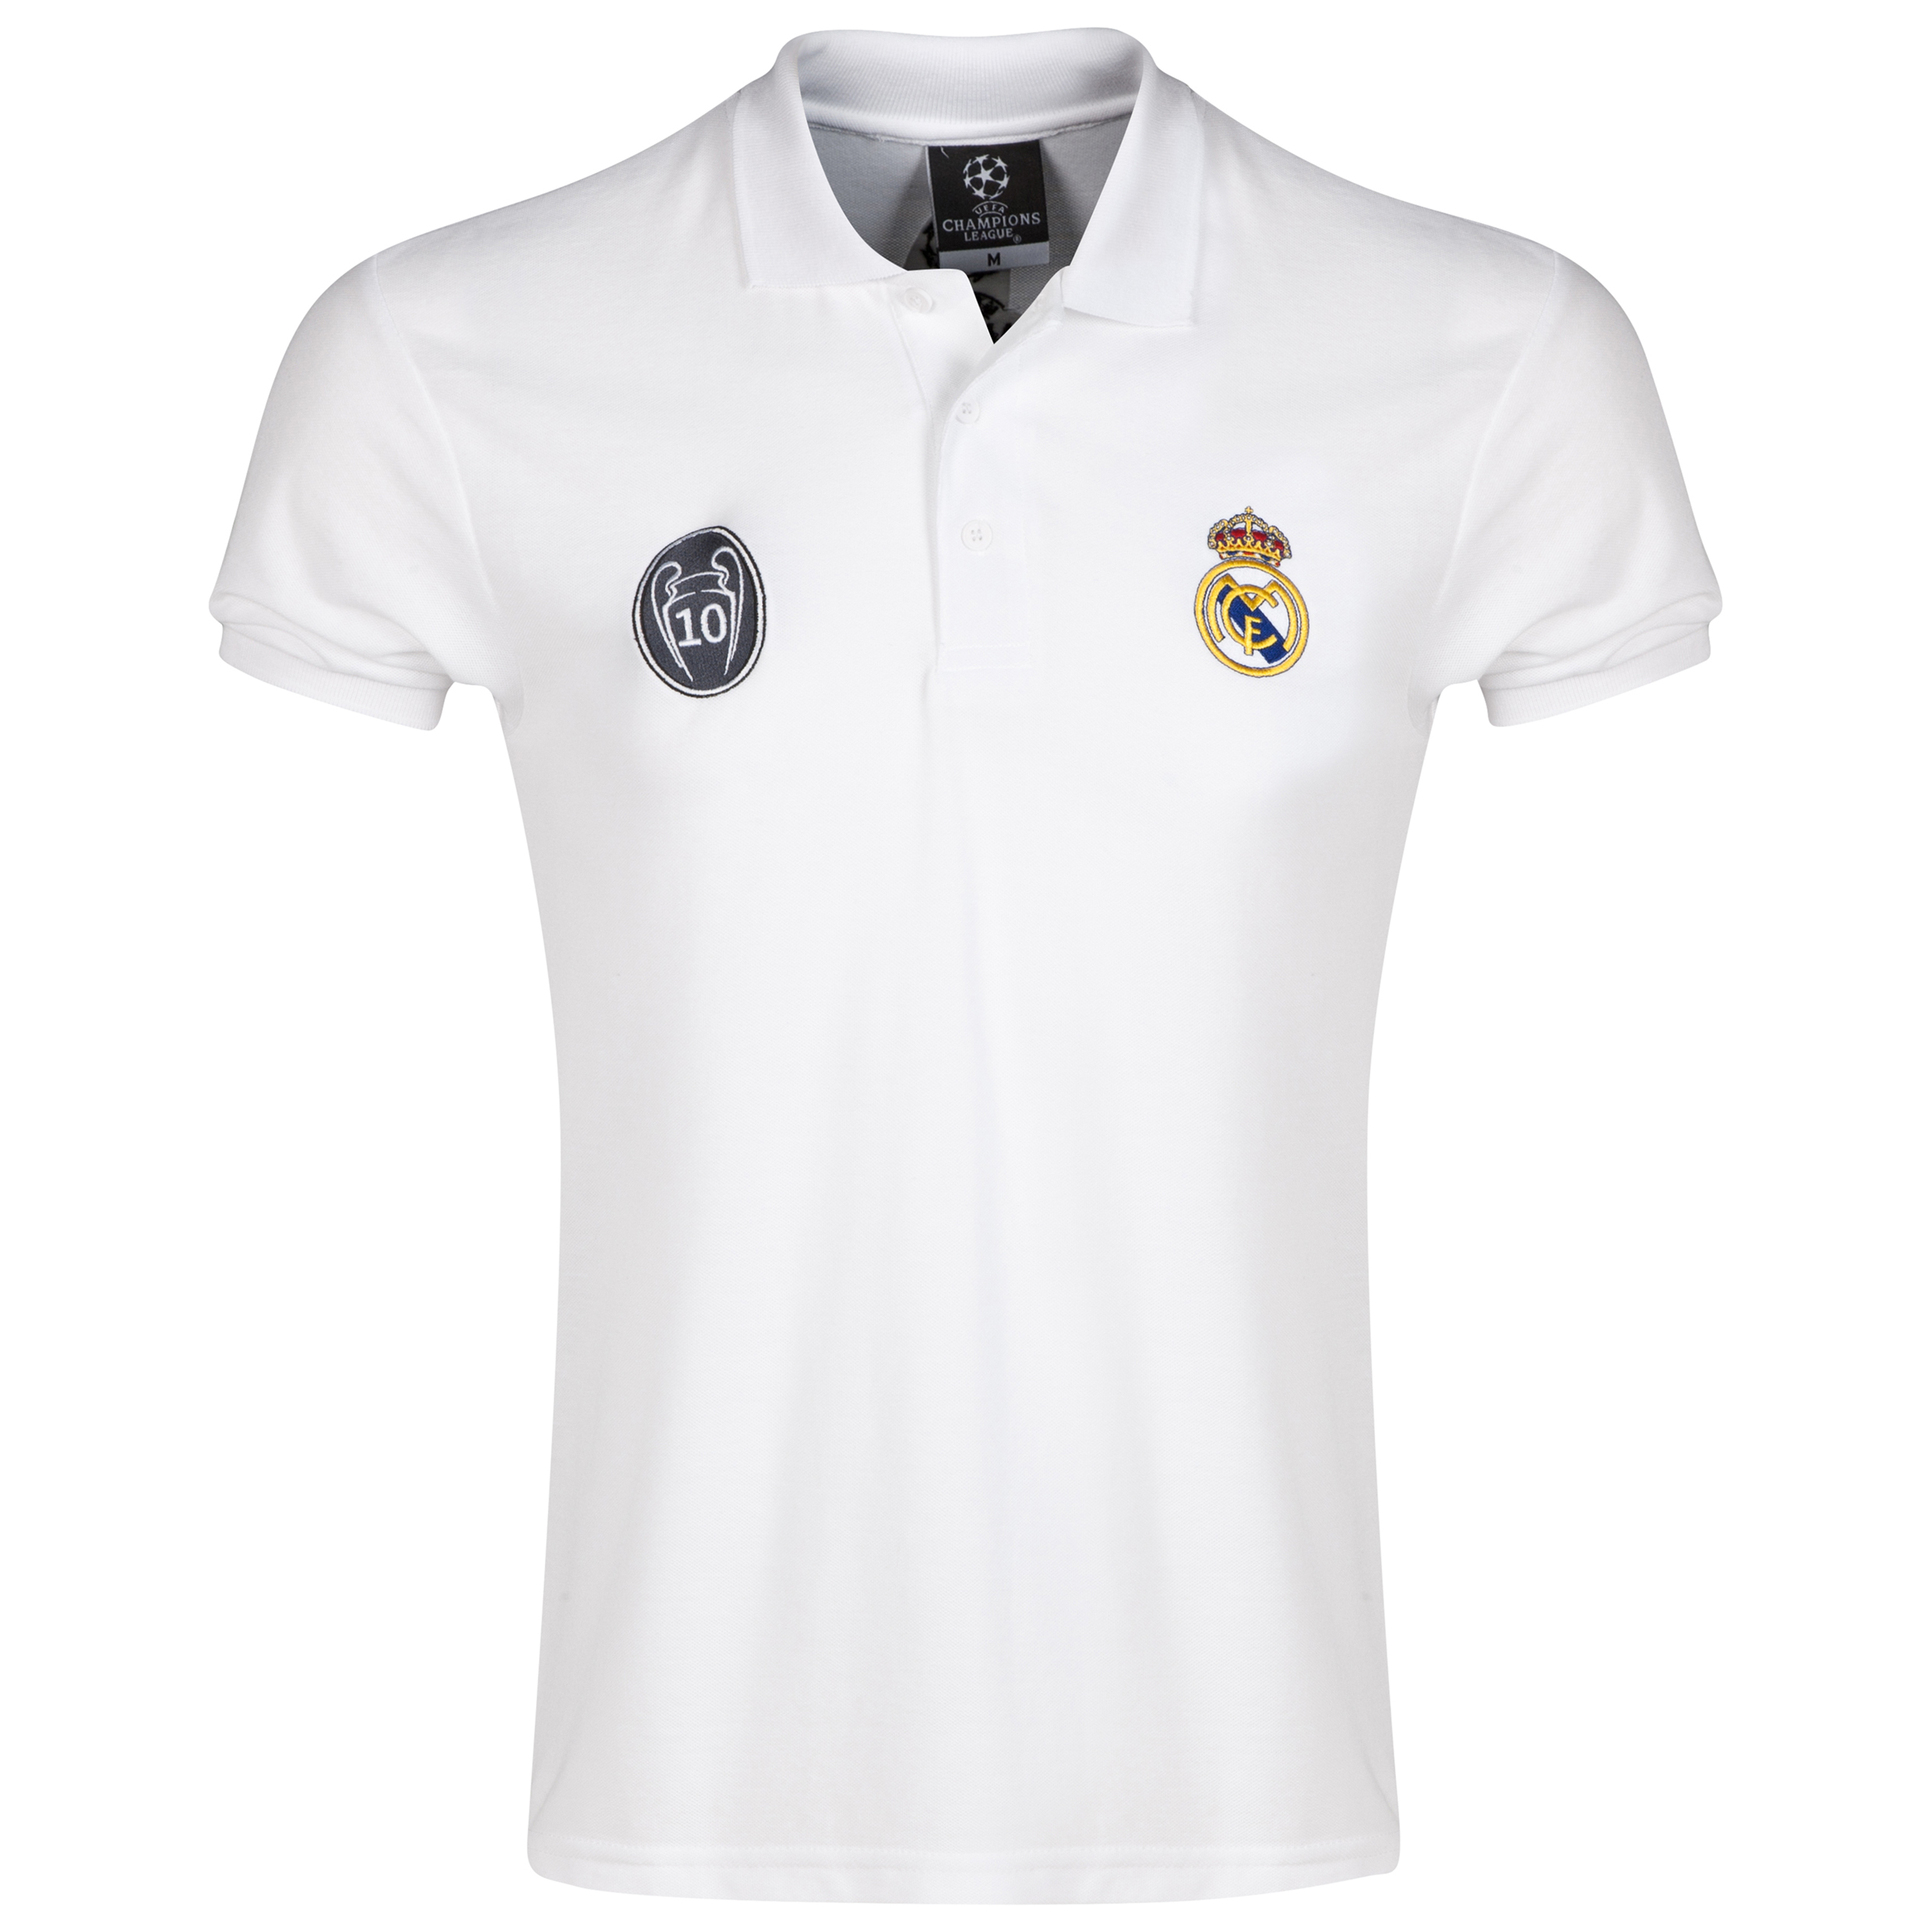 Real Madrid UCL Winners 2014 10 Polo